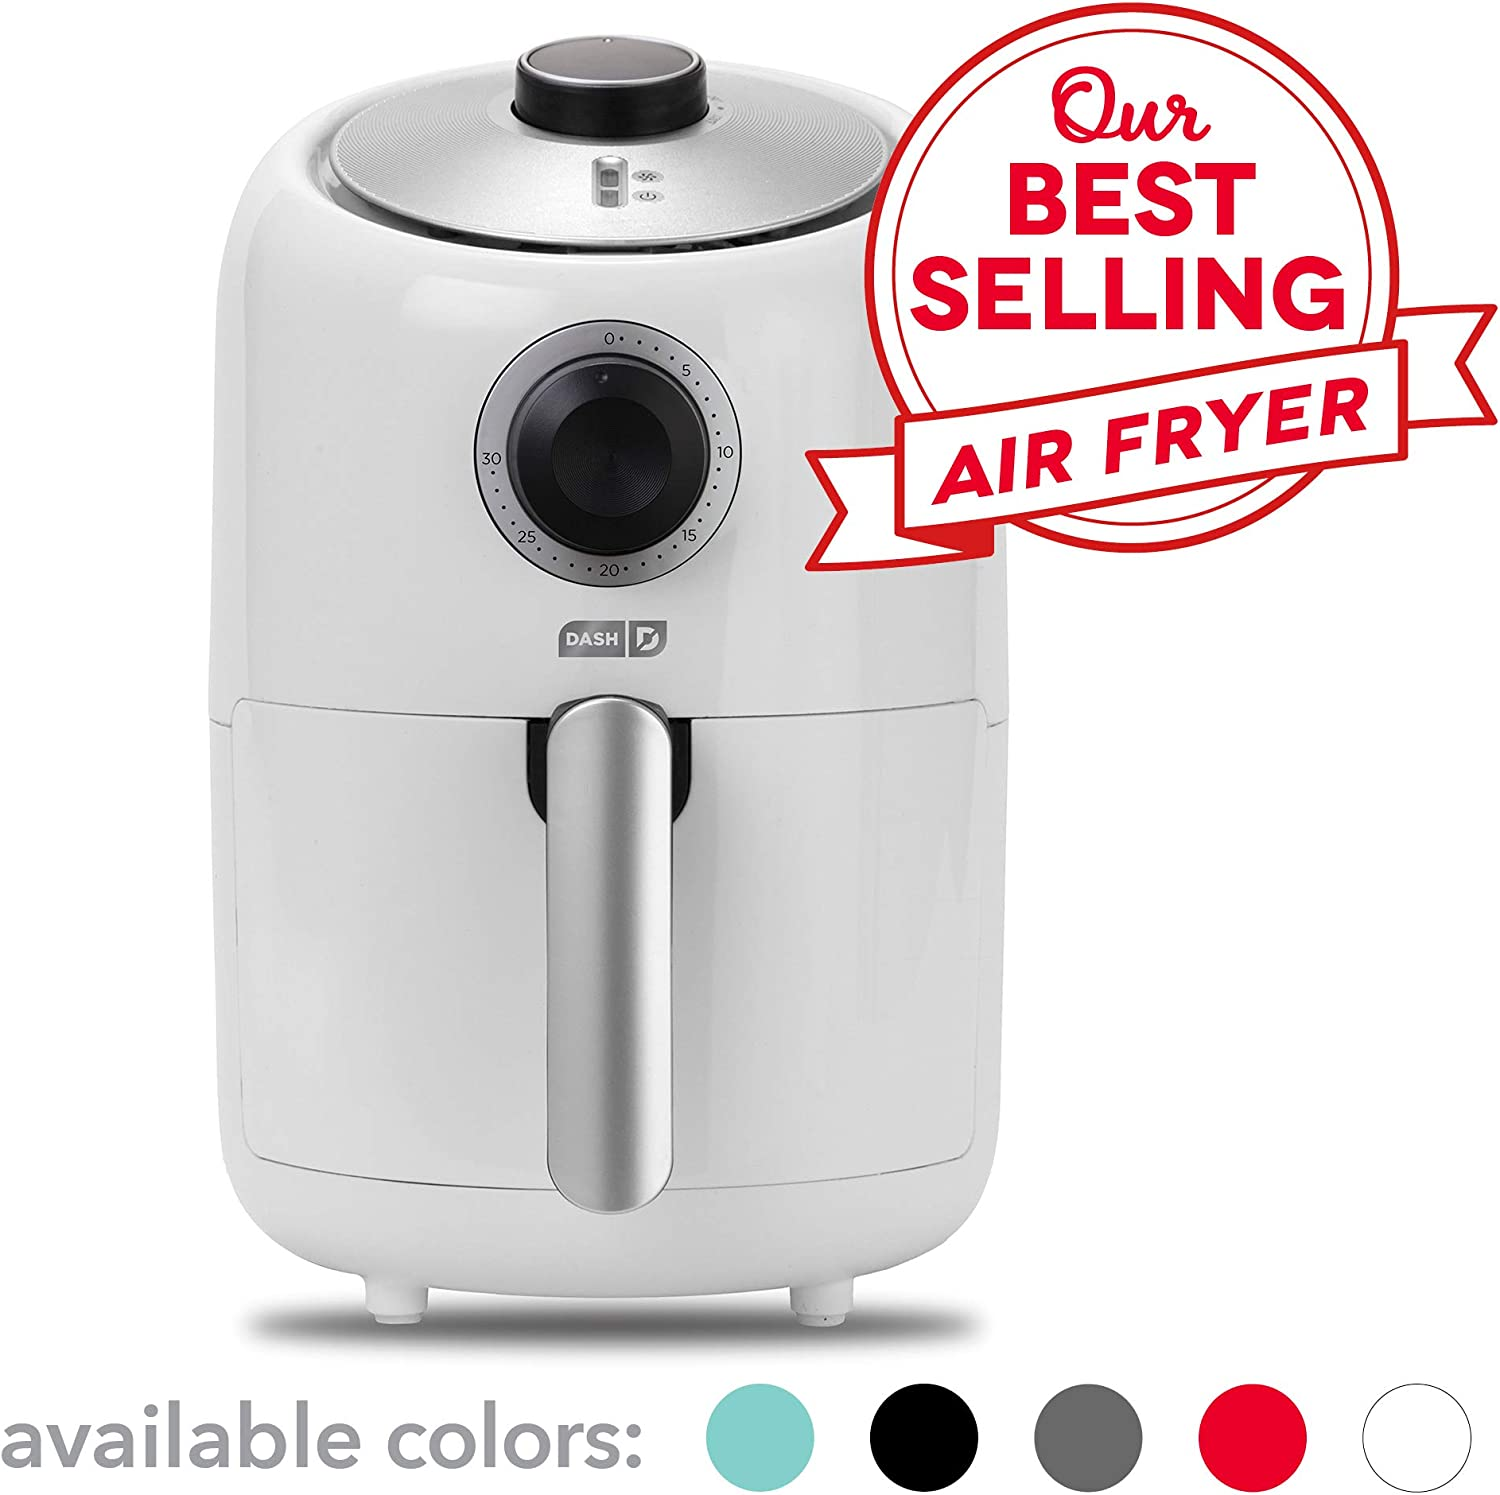 Dash Compact Air Fryer 1.2 L Electric Air Fryer Oven Cooker with Temperature Control, Non Stick Fry Basket, Recipe Guide + Auto Shut off Feature - White